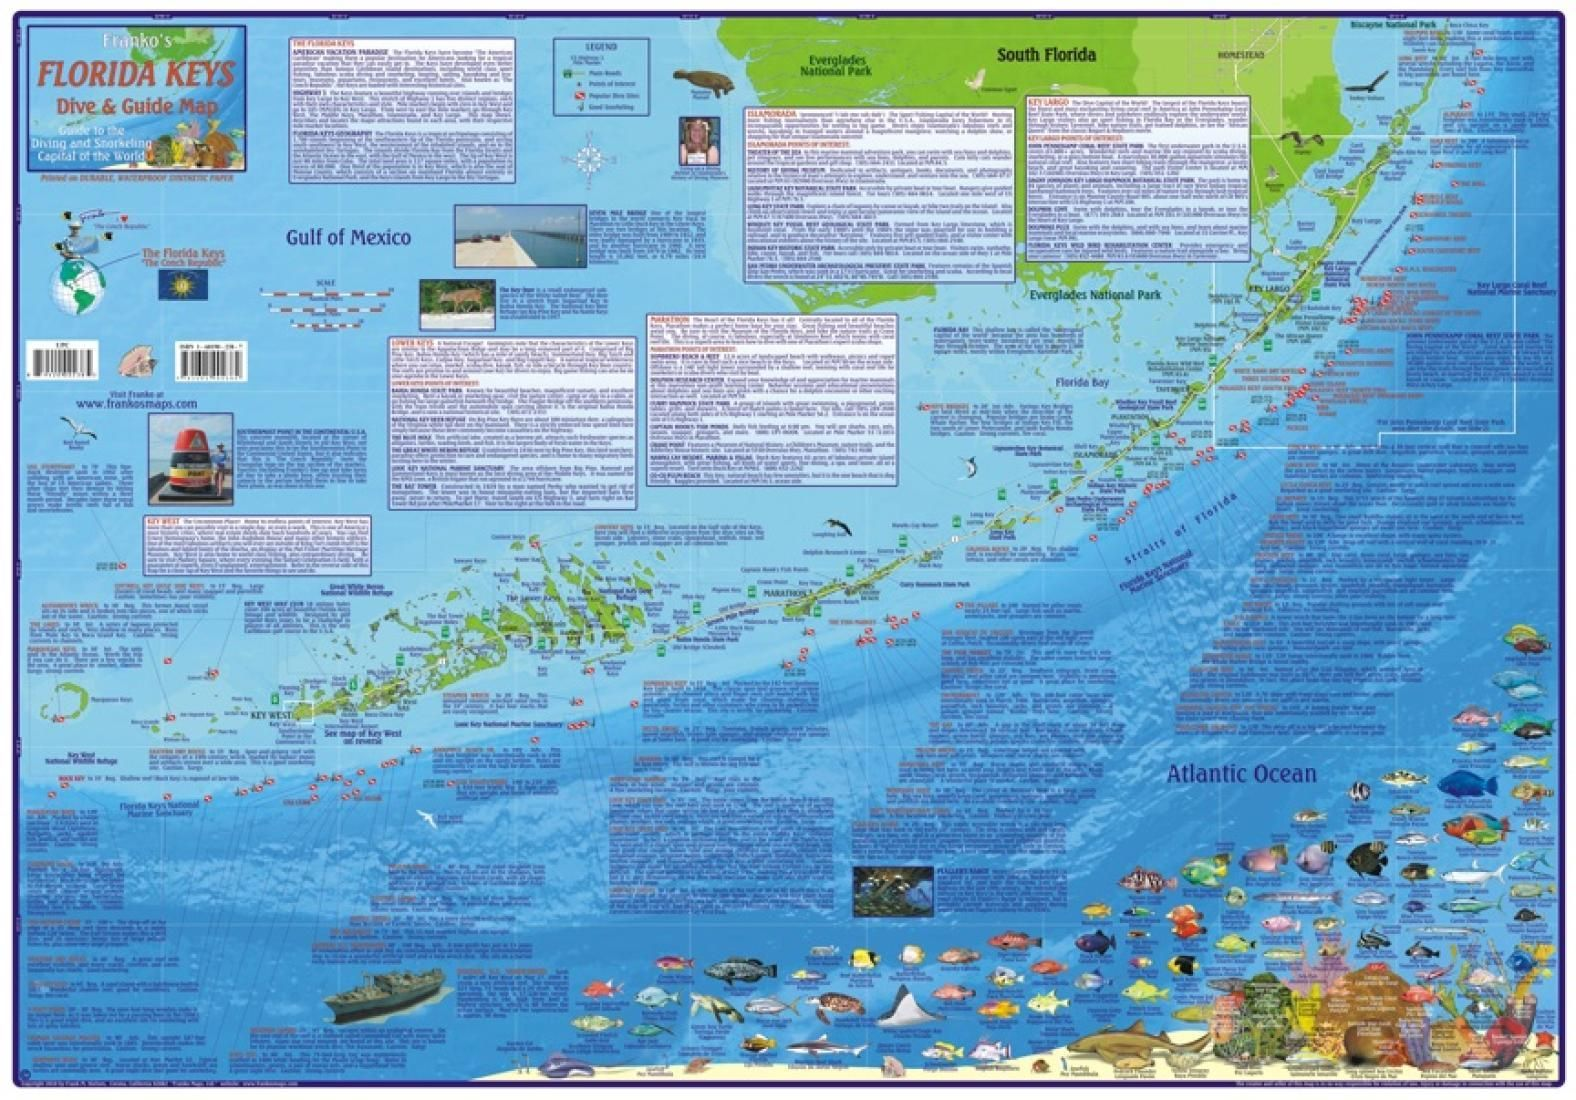 Florida Keys Maps.Florida Map Florida Keys Guide And Dive Laminated 2010 By Frankos